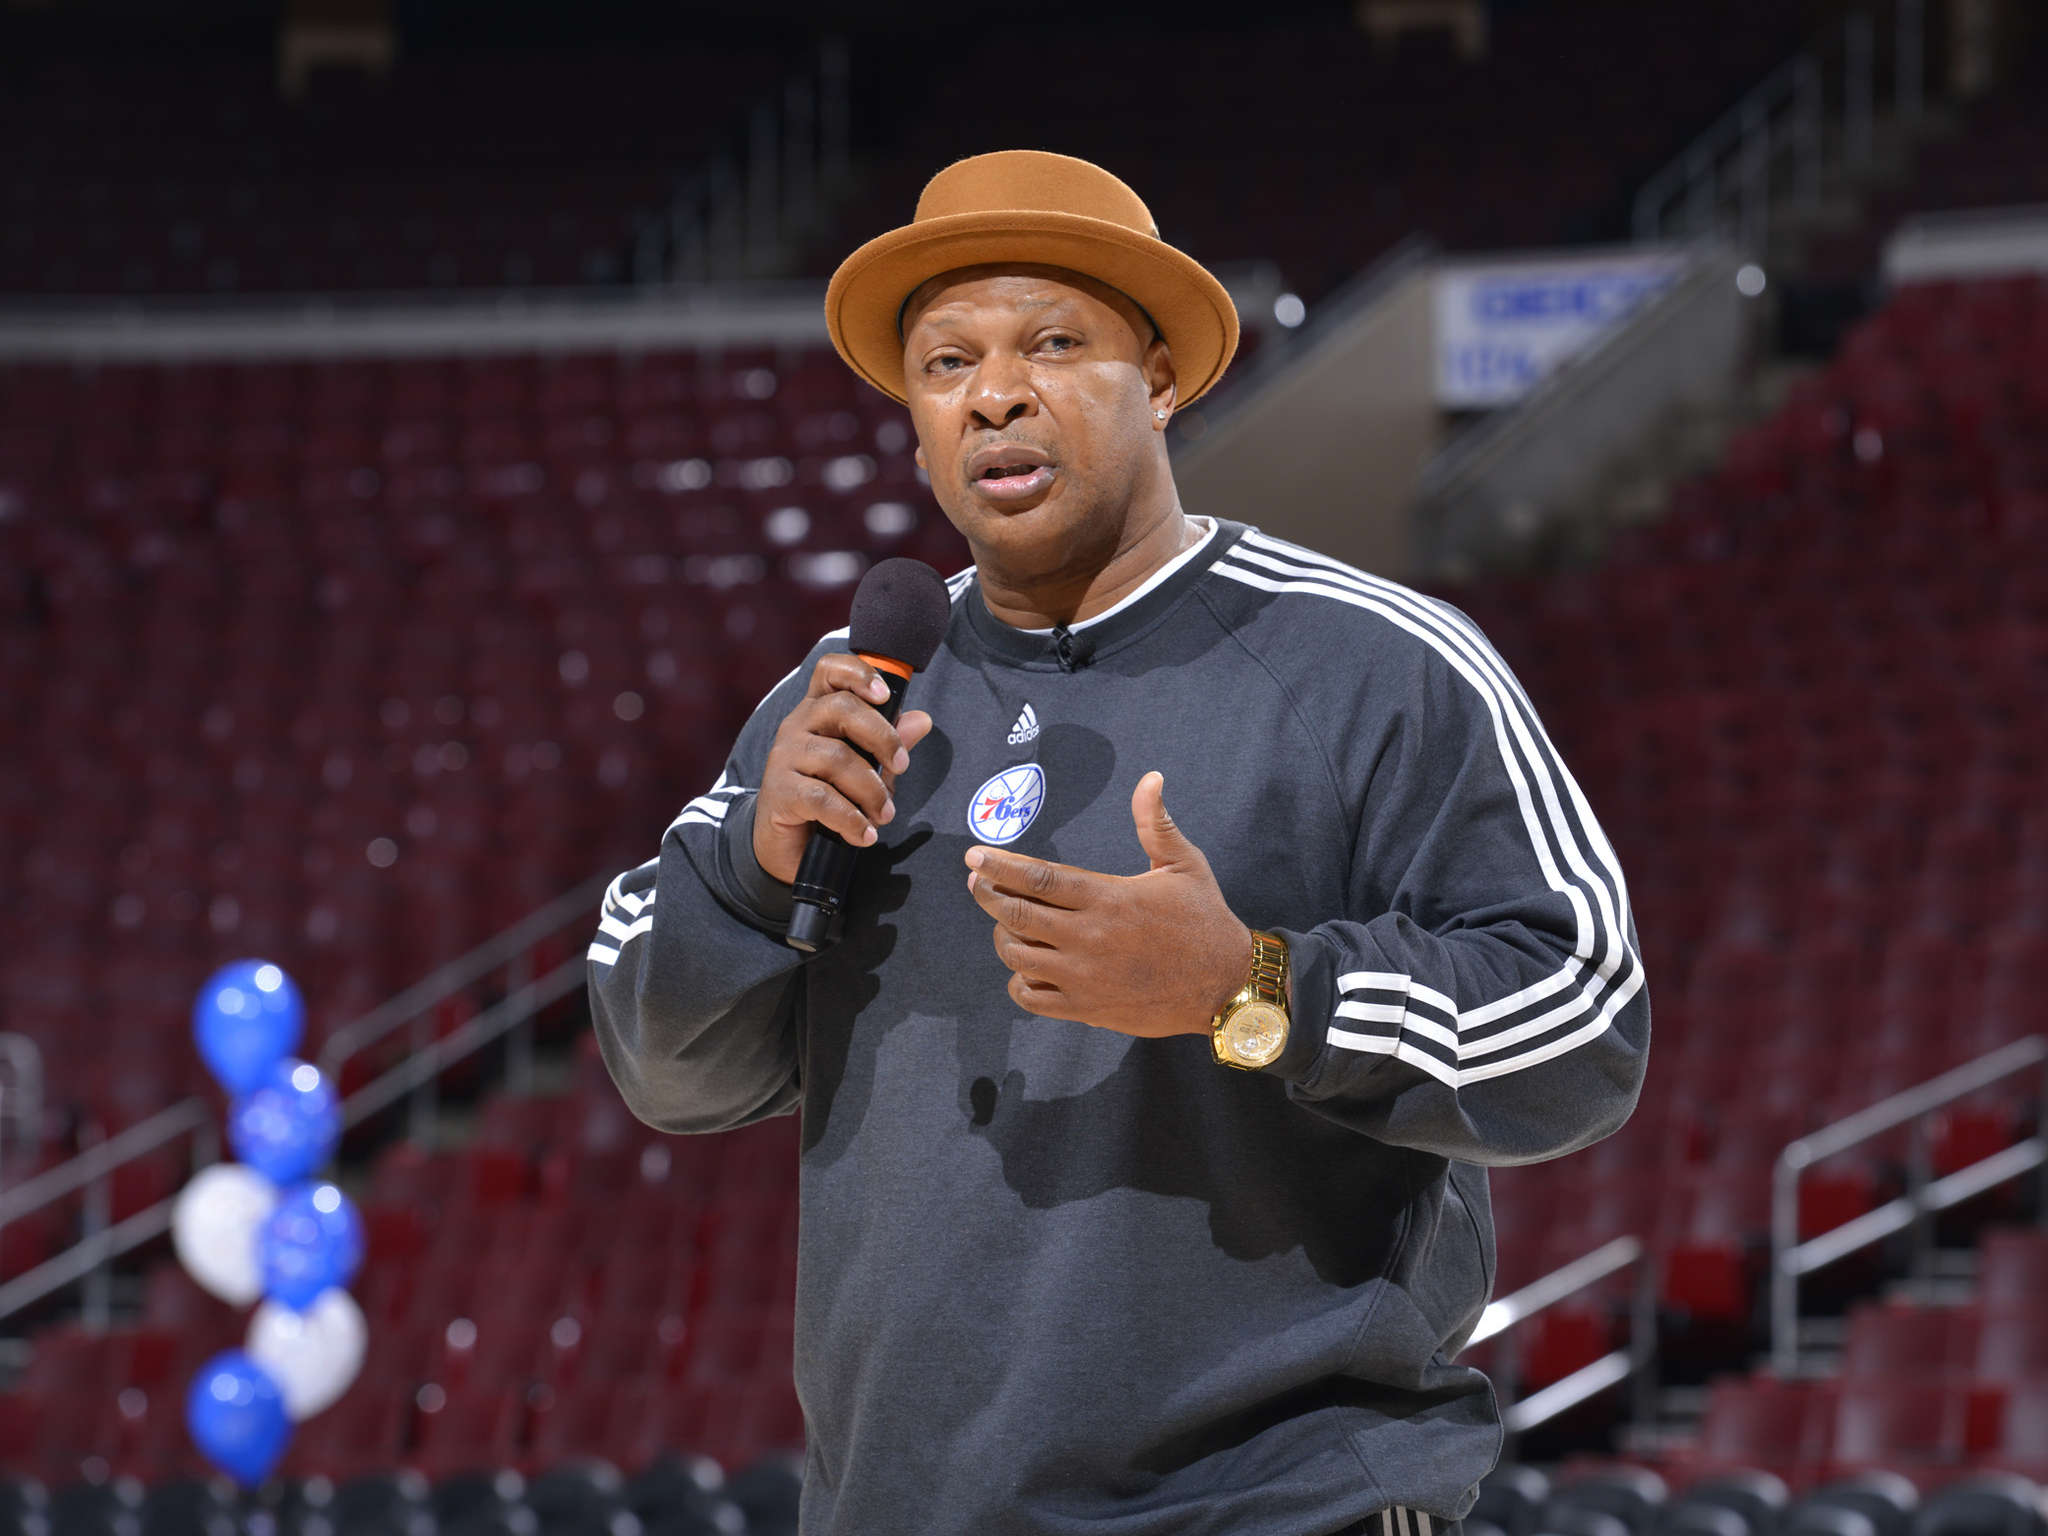 Former 76ers player World B. Free speaks at the Wells Fargo Center event for Philadelphia schoolchildren. Free has been critical of the Federal Reserve´s refusal to raise interest rates.